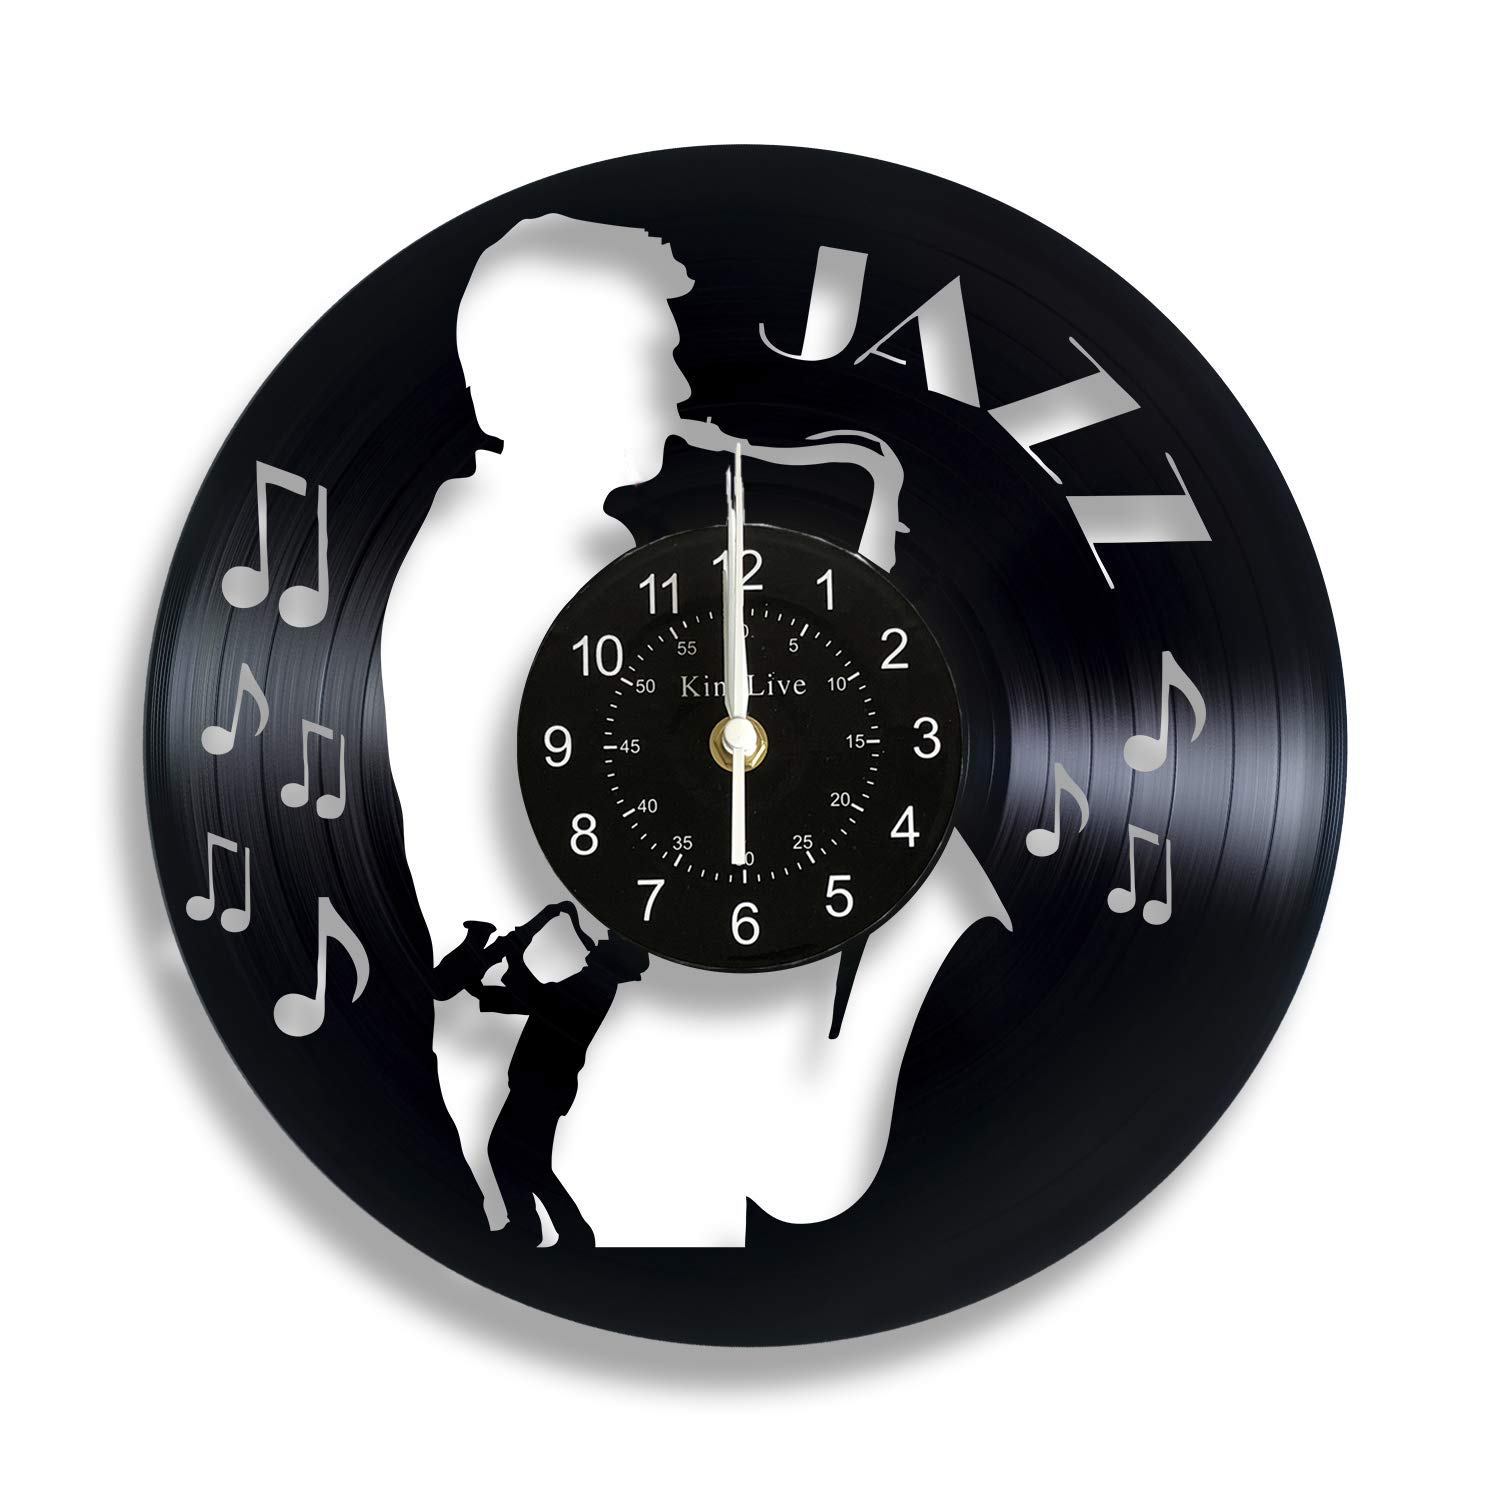 Music Jazz Saxophone Player Vinyl Record Wall Clock Home Interior Living Room Bedroom Office Recording Studio Decor Gift for Him Musicians Father Friend